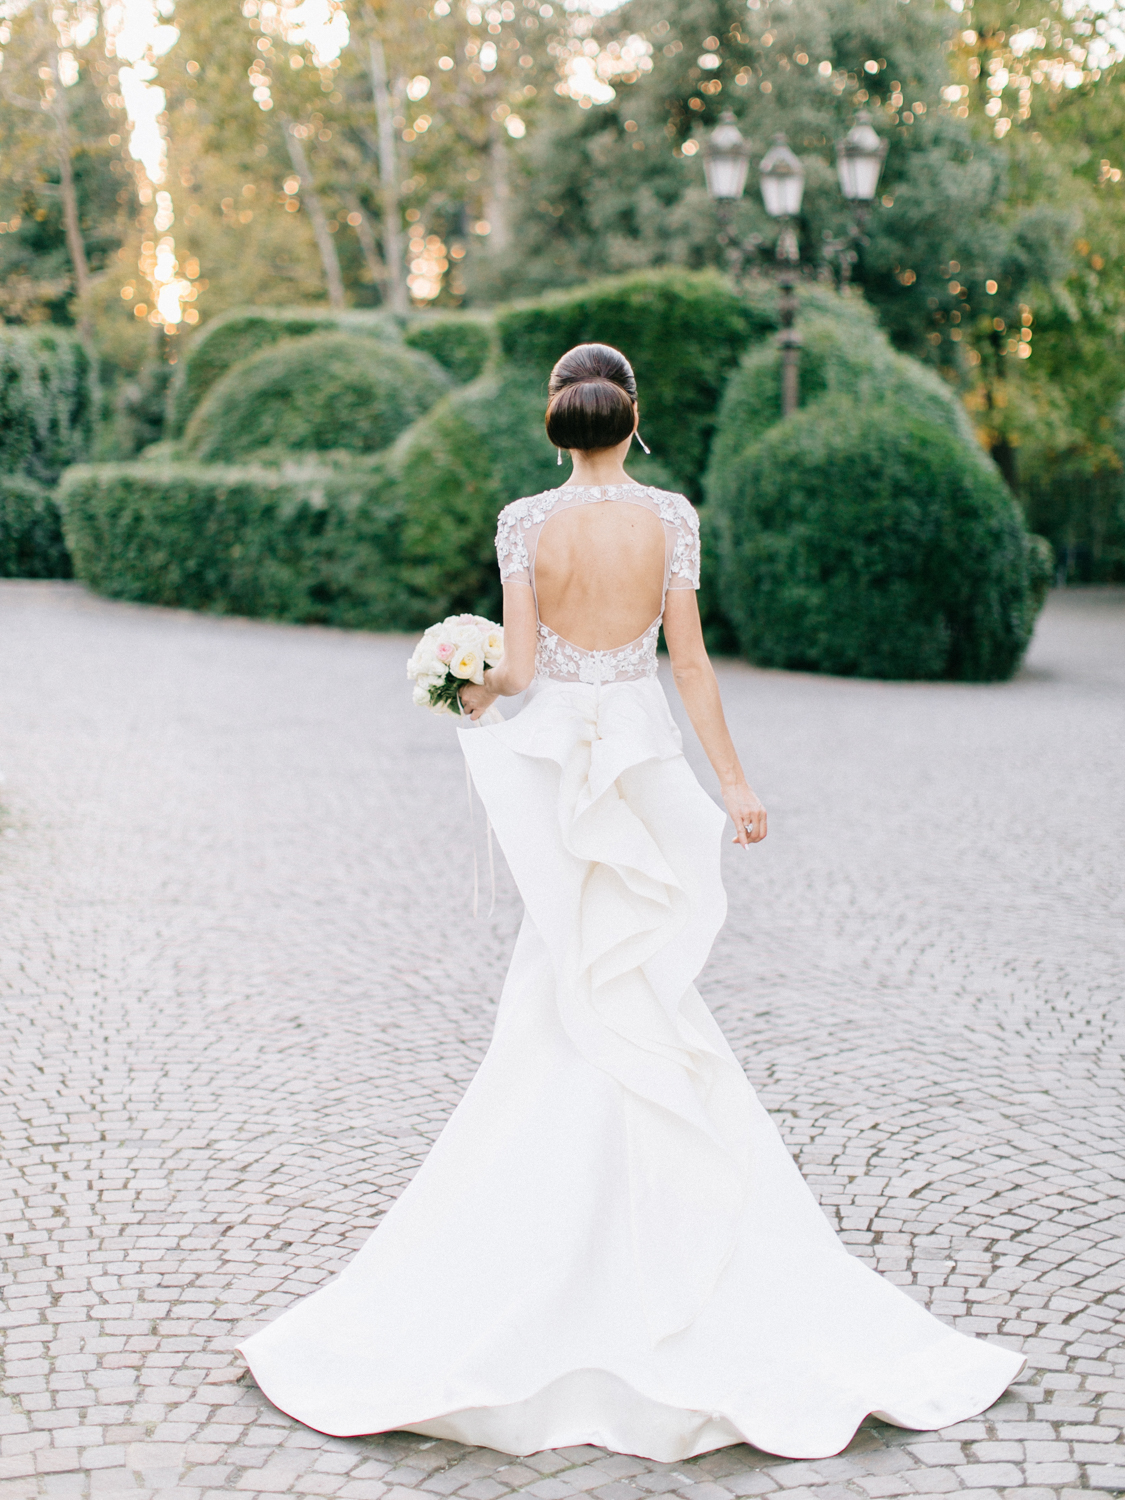 masha golub photography 96 - FLORENCE WEDDING